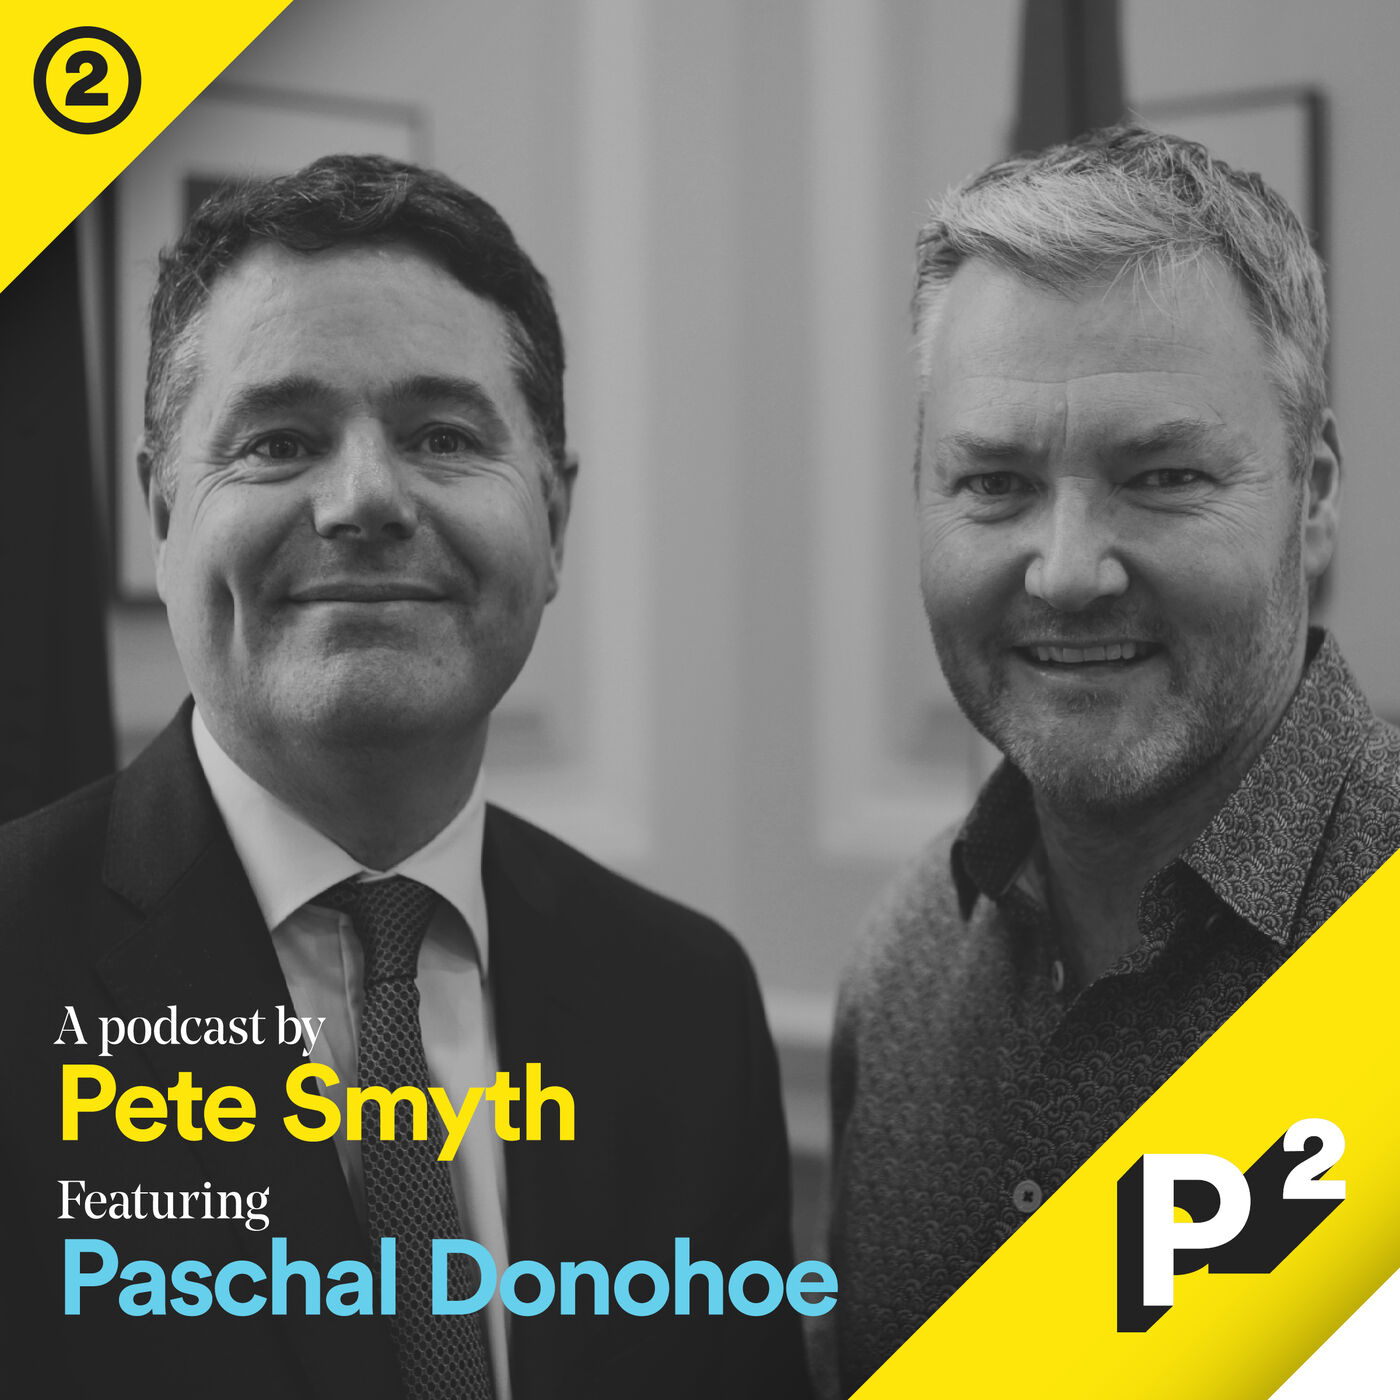 An insightful chat with Paschal Donohoe, Minister for Finance, Public Expenditure and Reform.